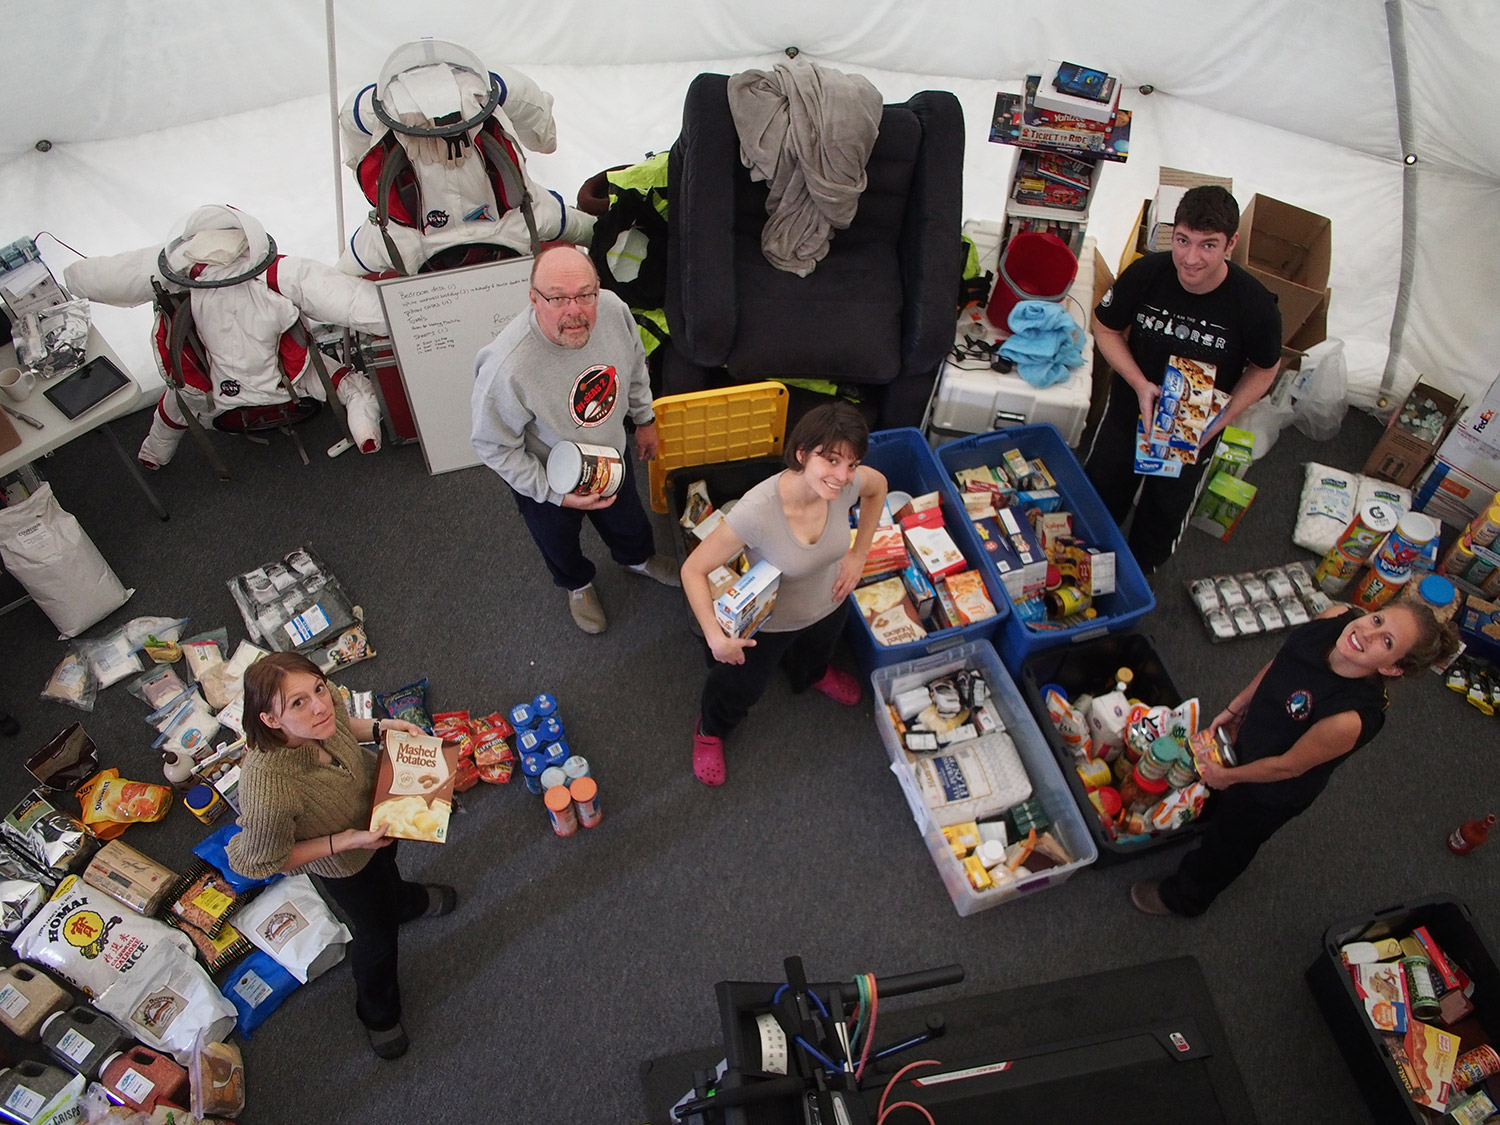 HI-SEAS crew members Tiffany Swarmer, Ron Williams, Lucie Poulet, Casey Stedman, and Annie Caraccio unpack crates of food for the current mission. Credit: Ross Lockwood